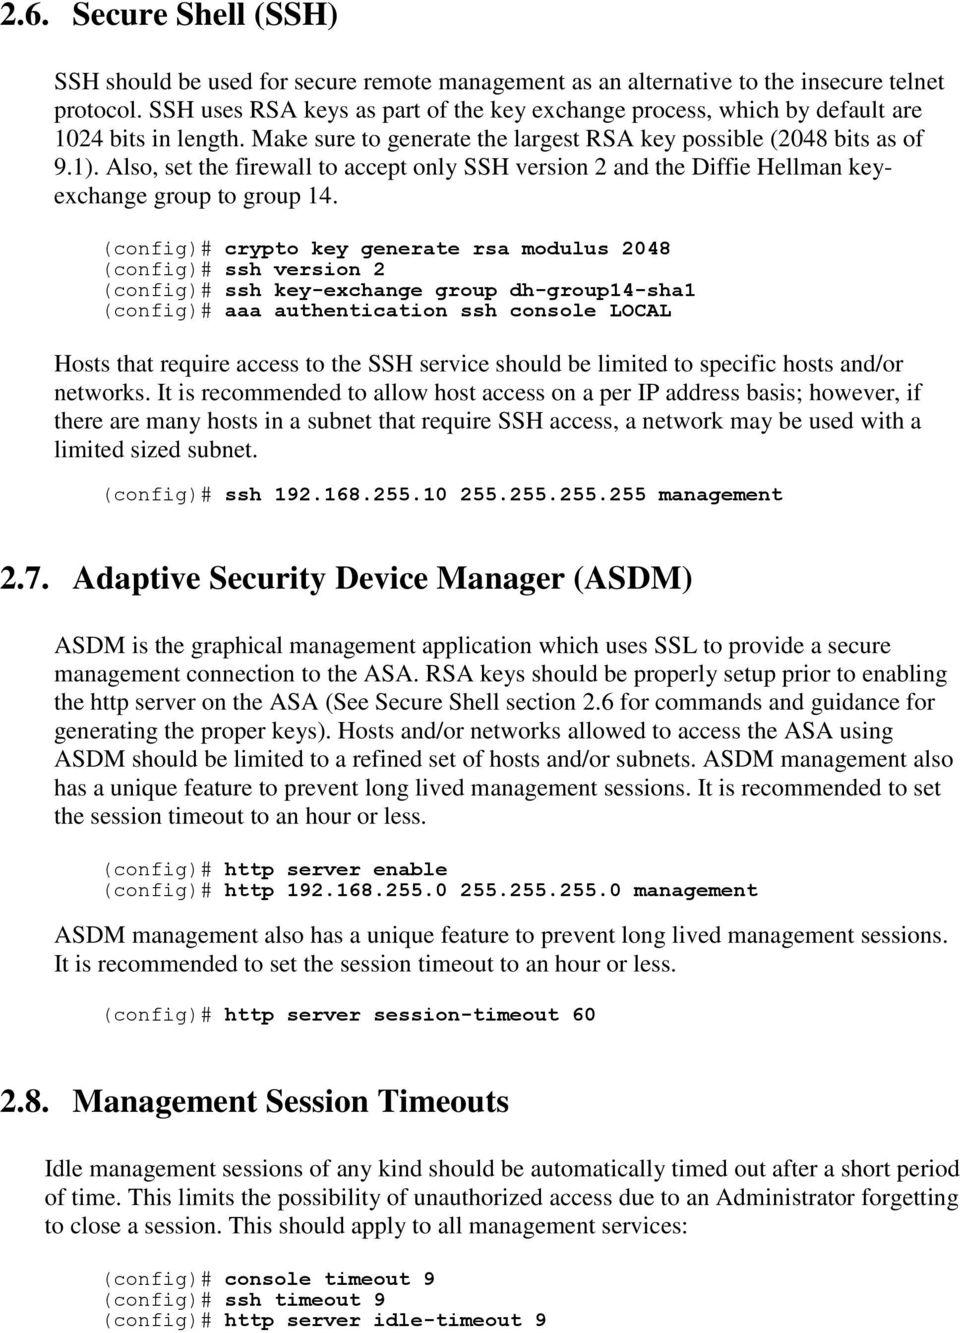 Also, set the firewall to accept only SSH version 2 and the Diffie Hellman keyexchange group to group 14.